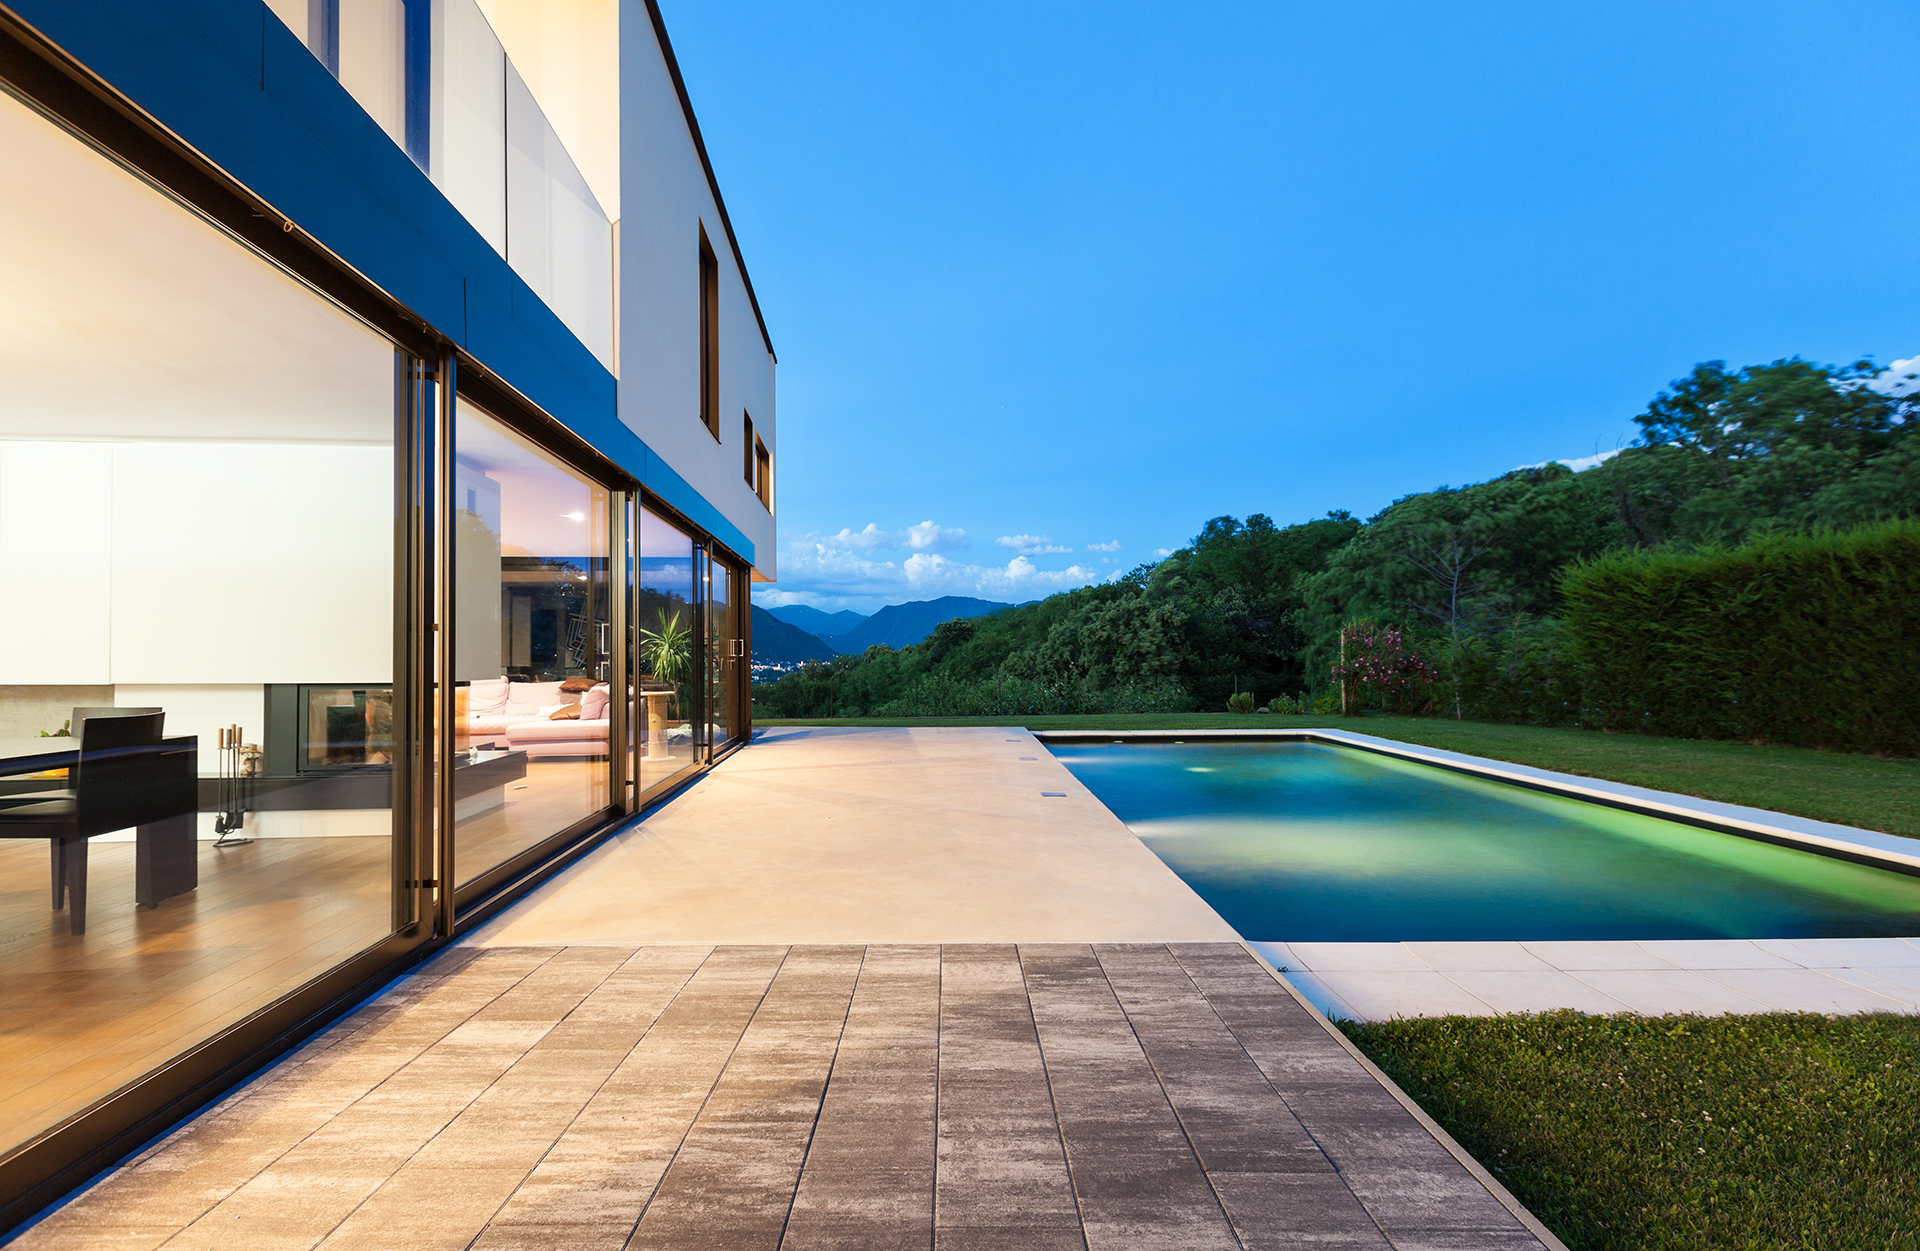 Artedomus Outdoor Tiles & Pavers